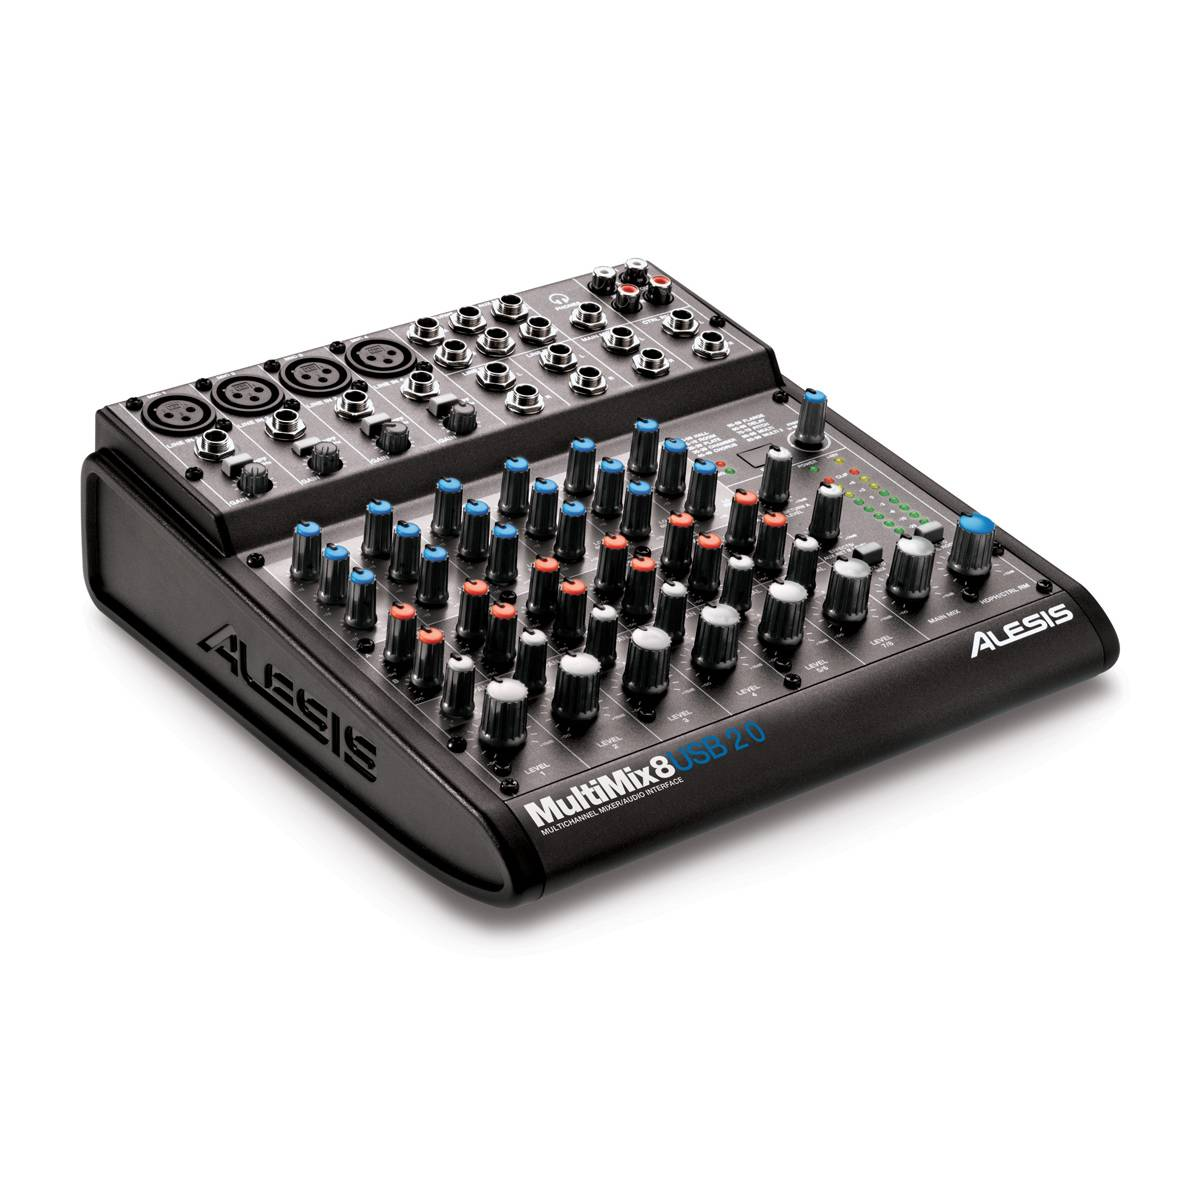 alesis multimix 8 usb 2 0 mixer audio interface. Black Bedroom Furniture Sets. Home Design Ideas